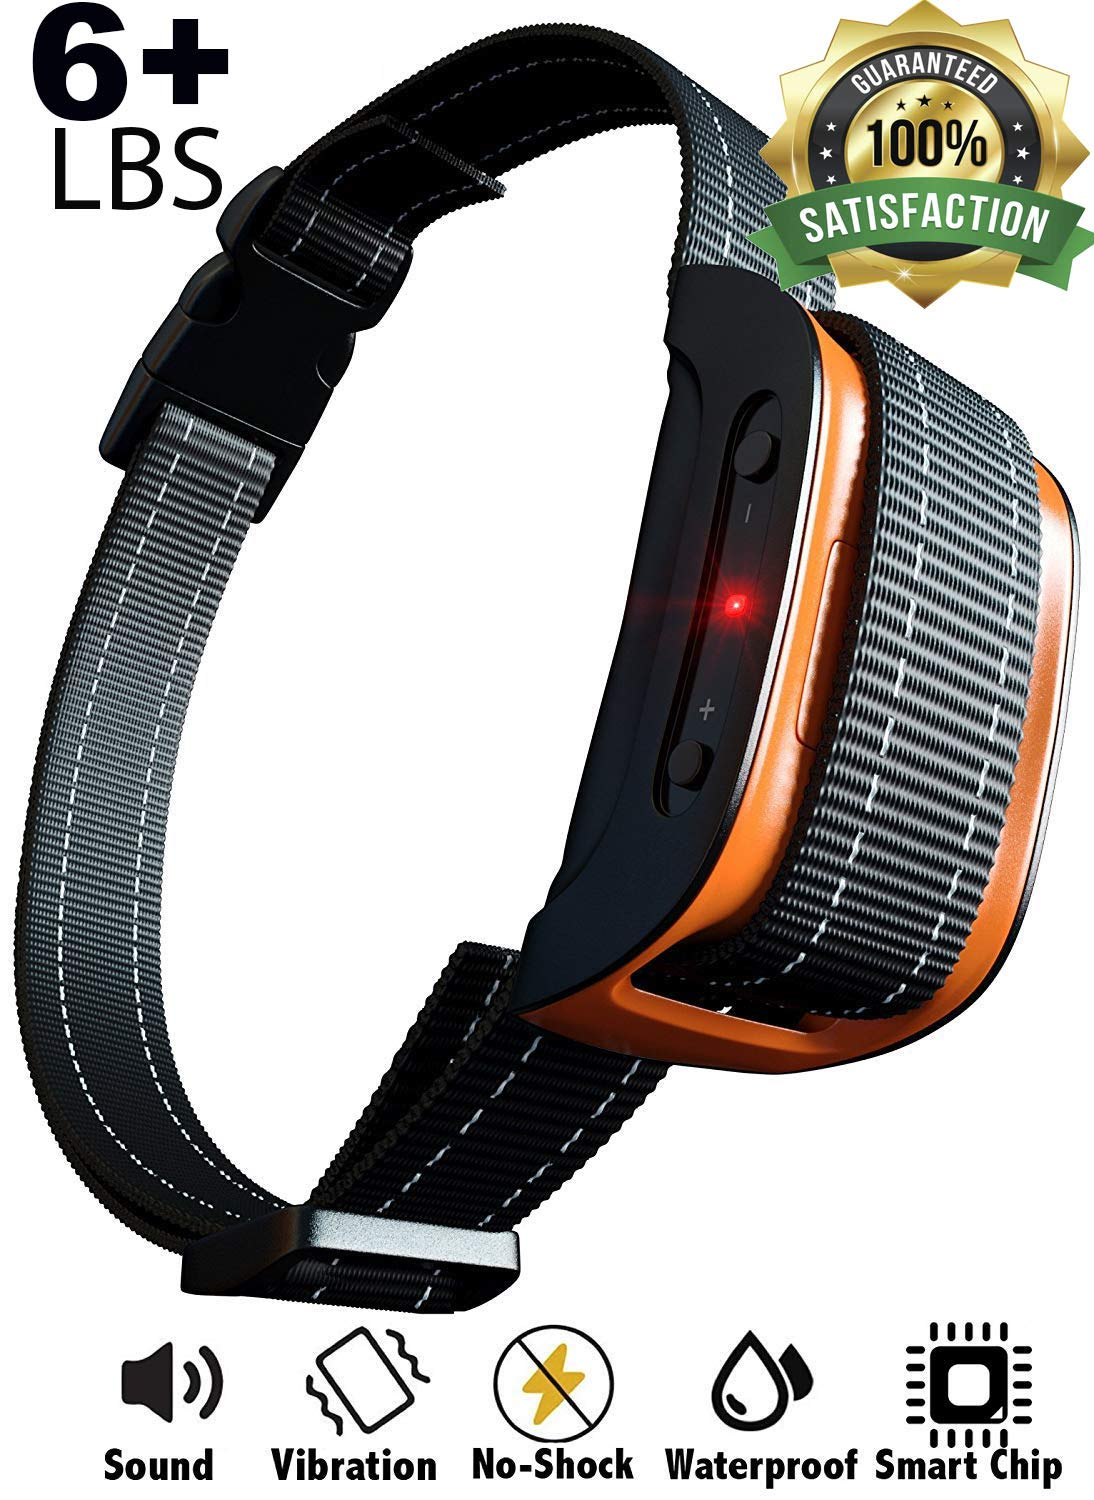 Bark Collar [2020 Superhuman CHIP] Best for Small Medium Large Dogs, Most Effective Anti Bark Device 7 Sound and Vibro Modes, No Harmful Shock, No Pain for a Dog, Hypoallergenic (Black/Orange) by NPS